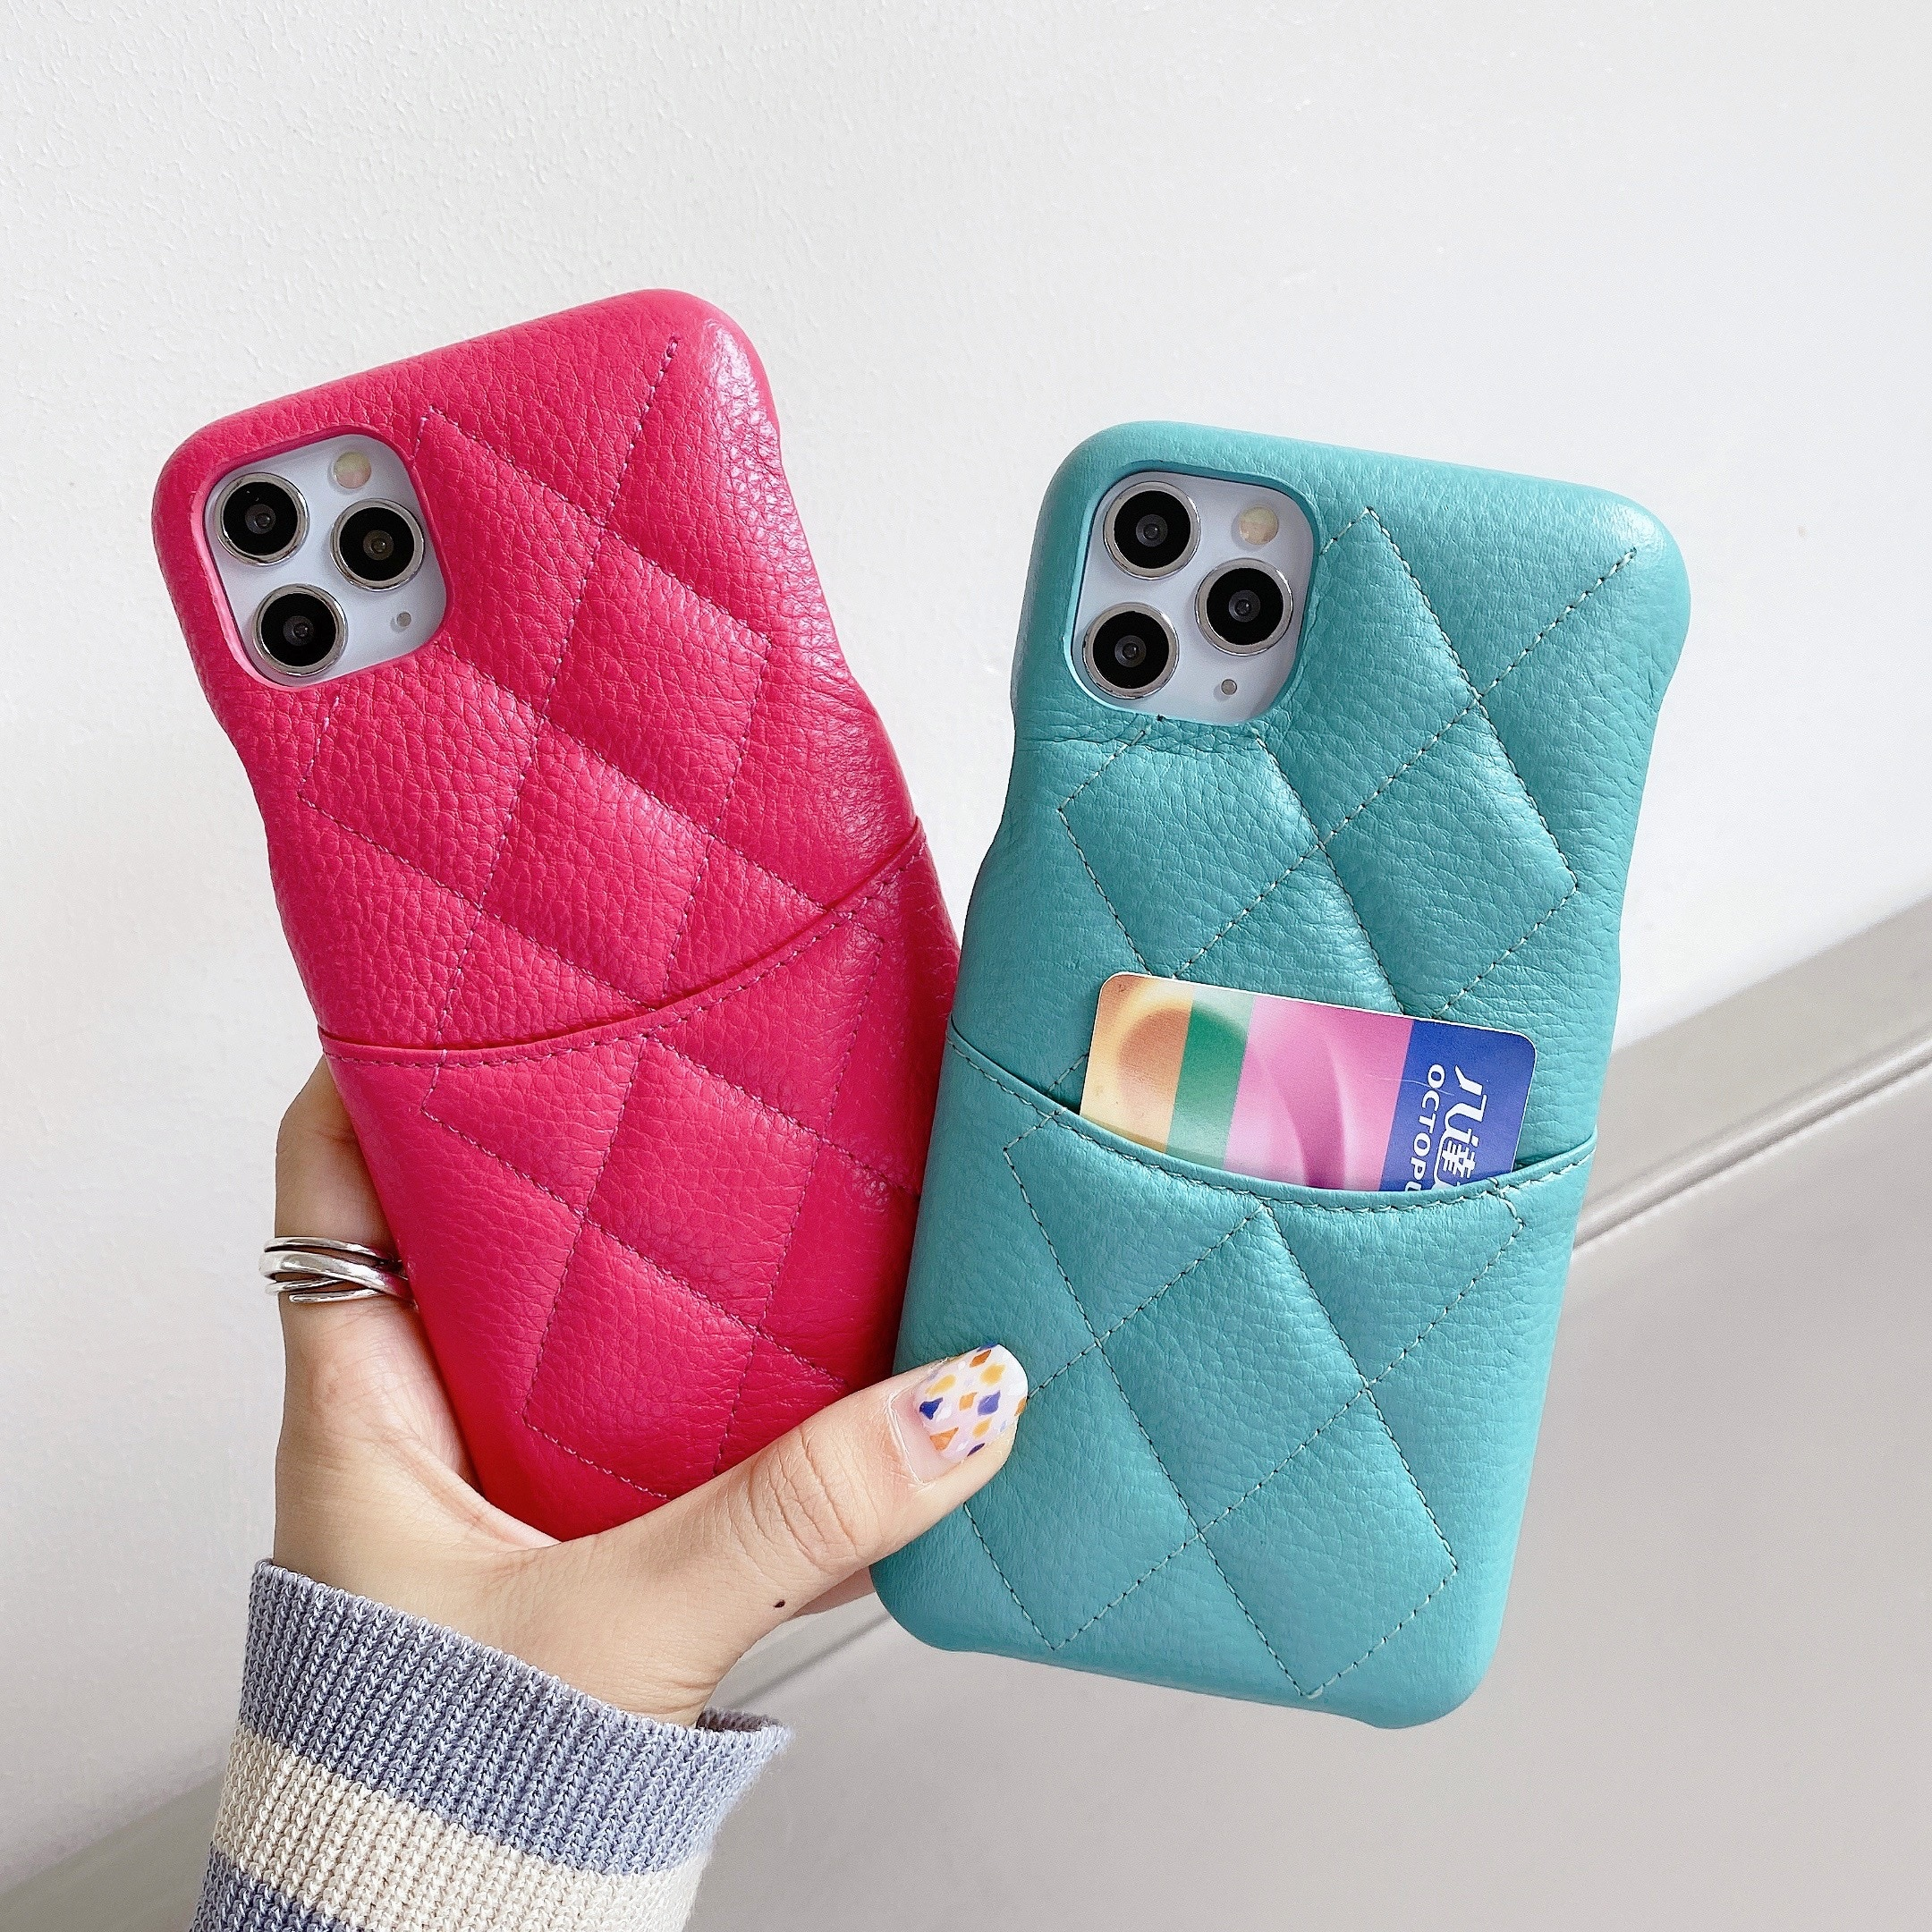 Luxury Brand Case For iPhone 12 11 Pro 7 8 Plus XR X Max Genuine Leather Card Pocket Cover Top Quali